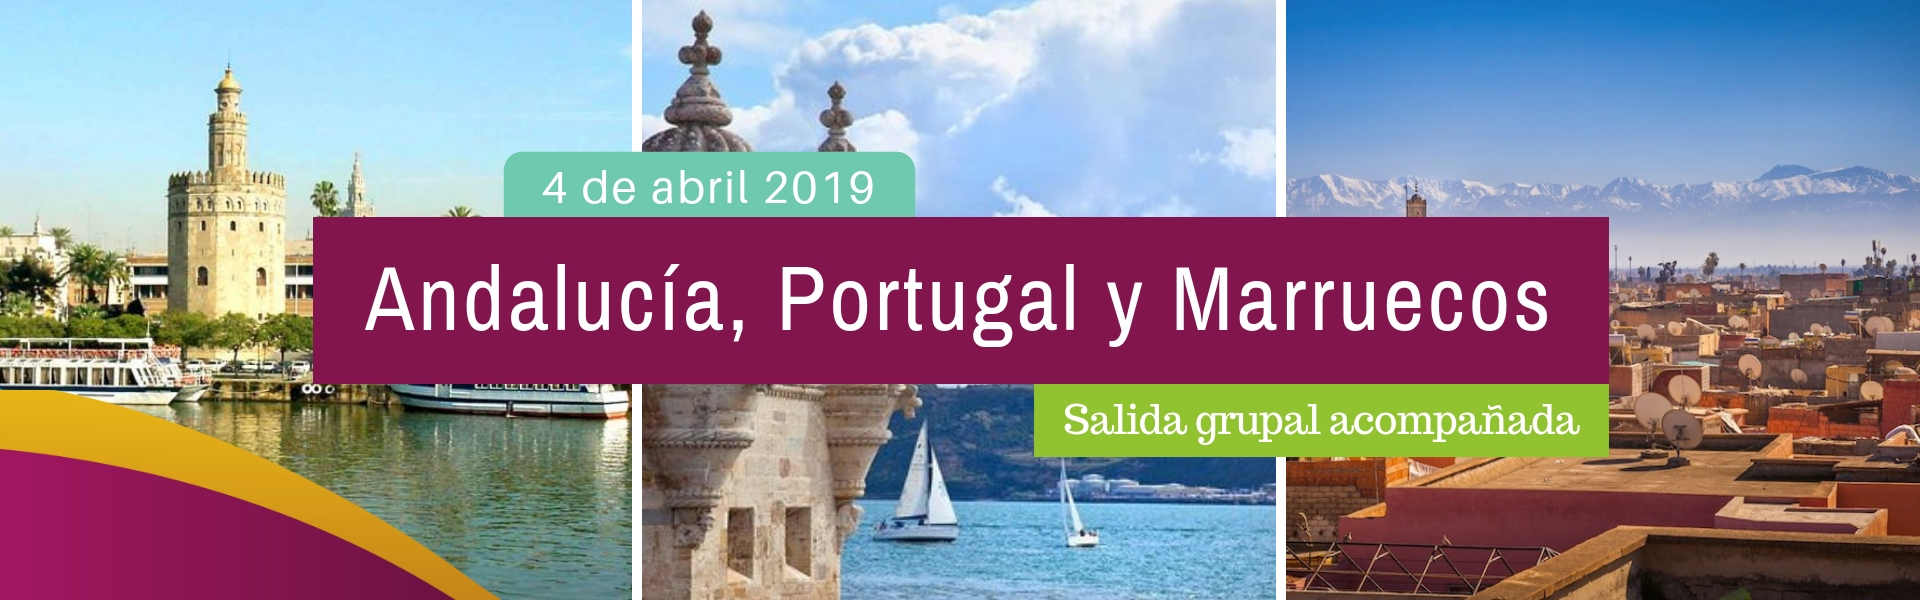 Andalucia, Portugal y Marruecos - 4 de Abril de 2019